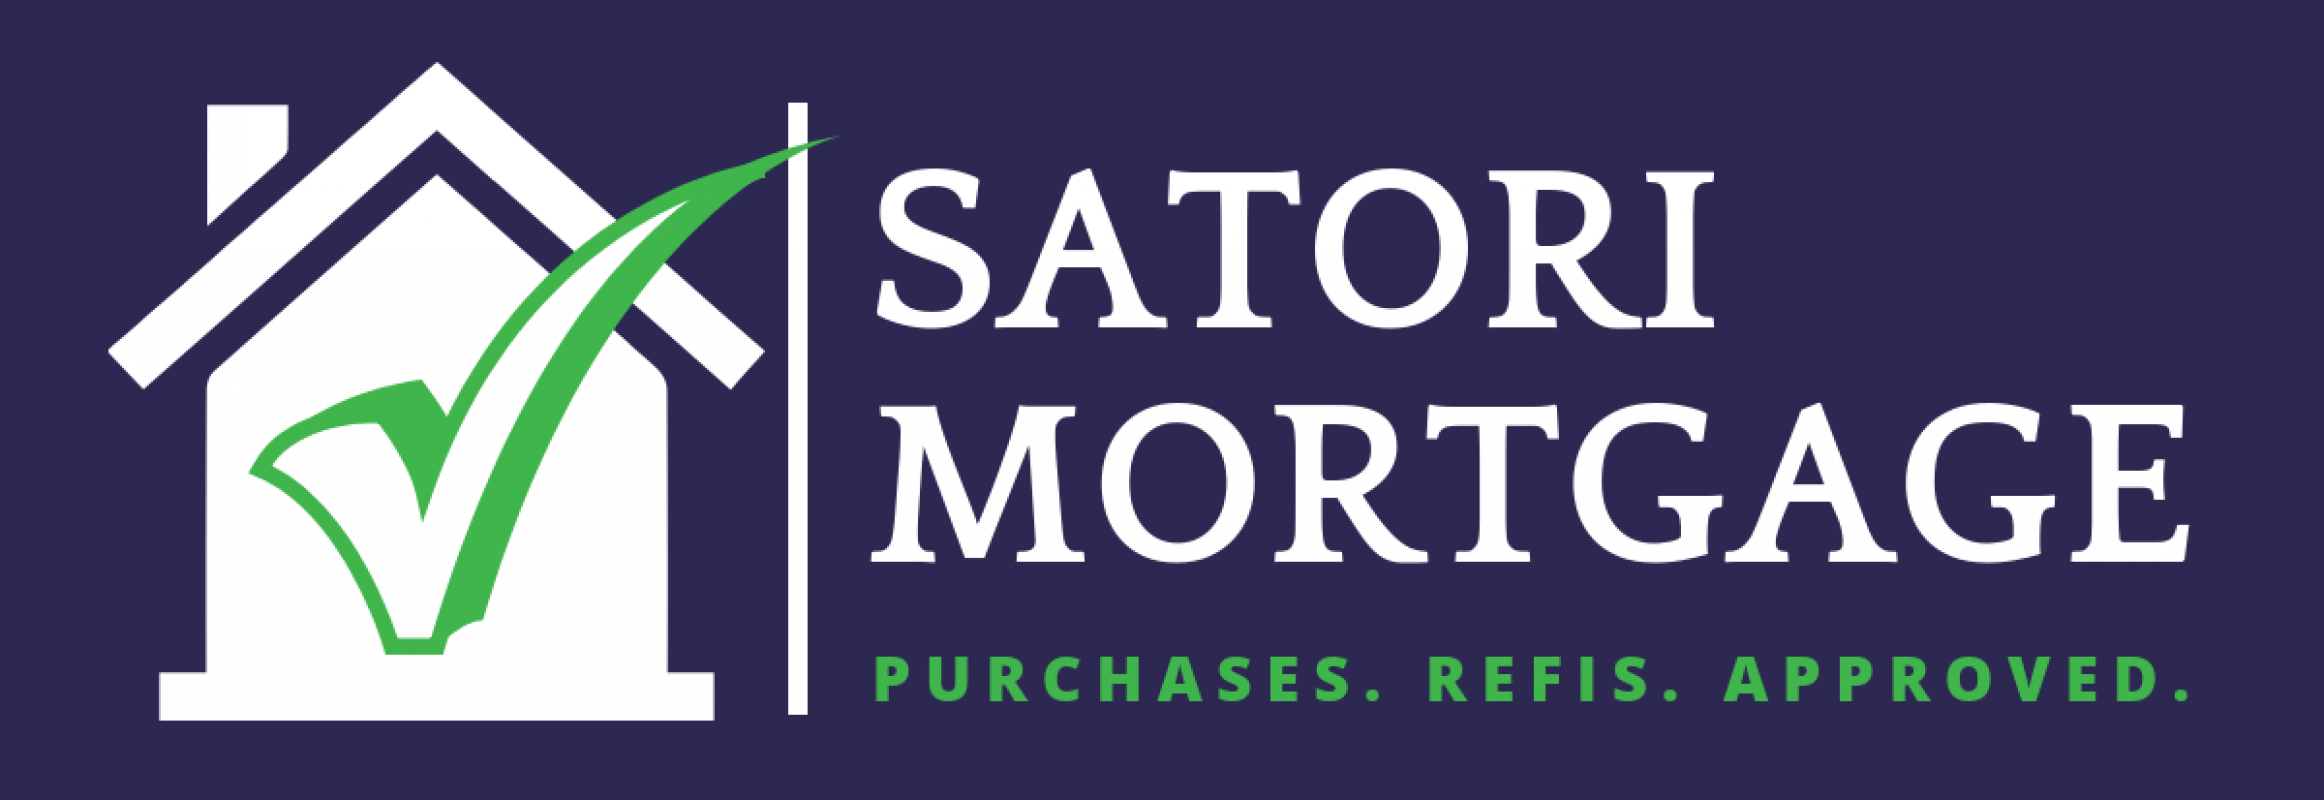 Satori Mortgage Florida logo